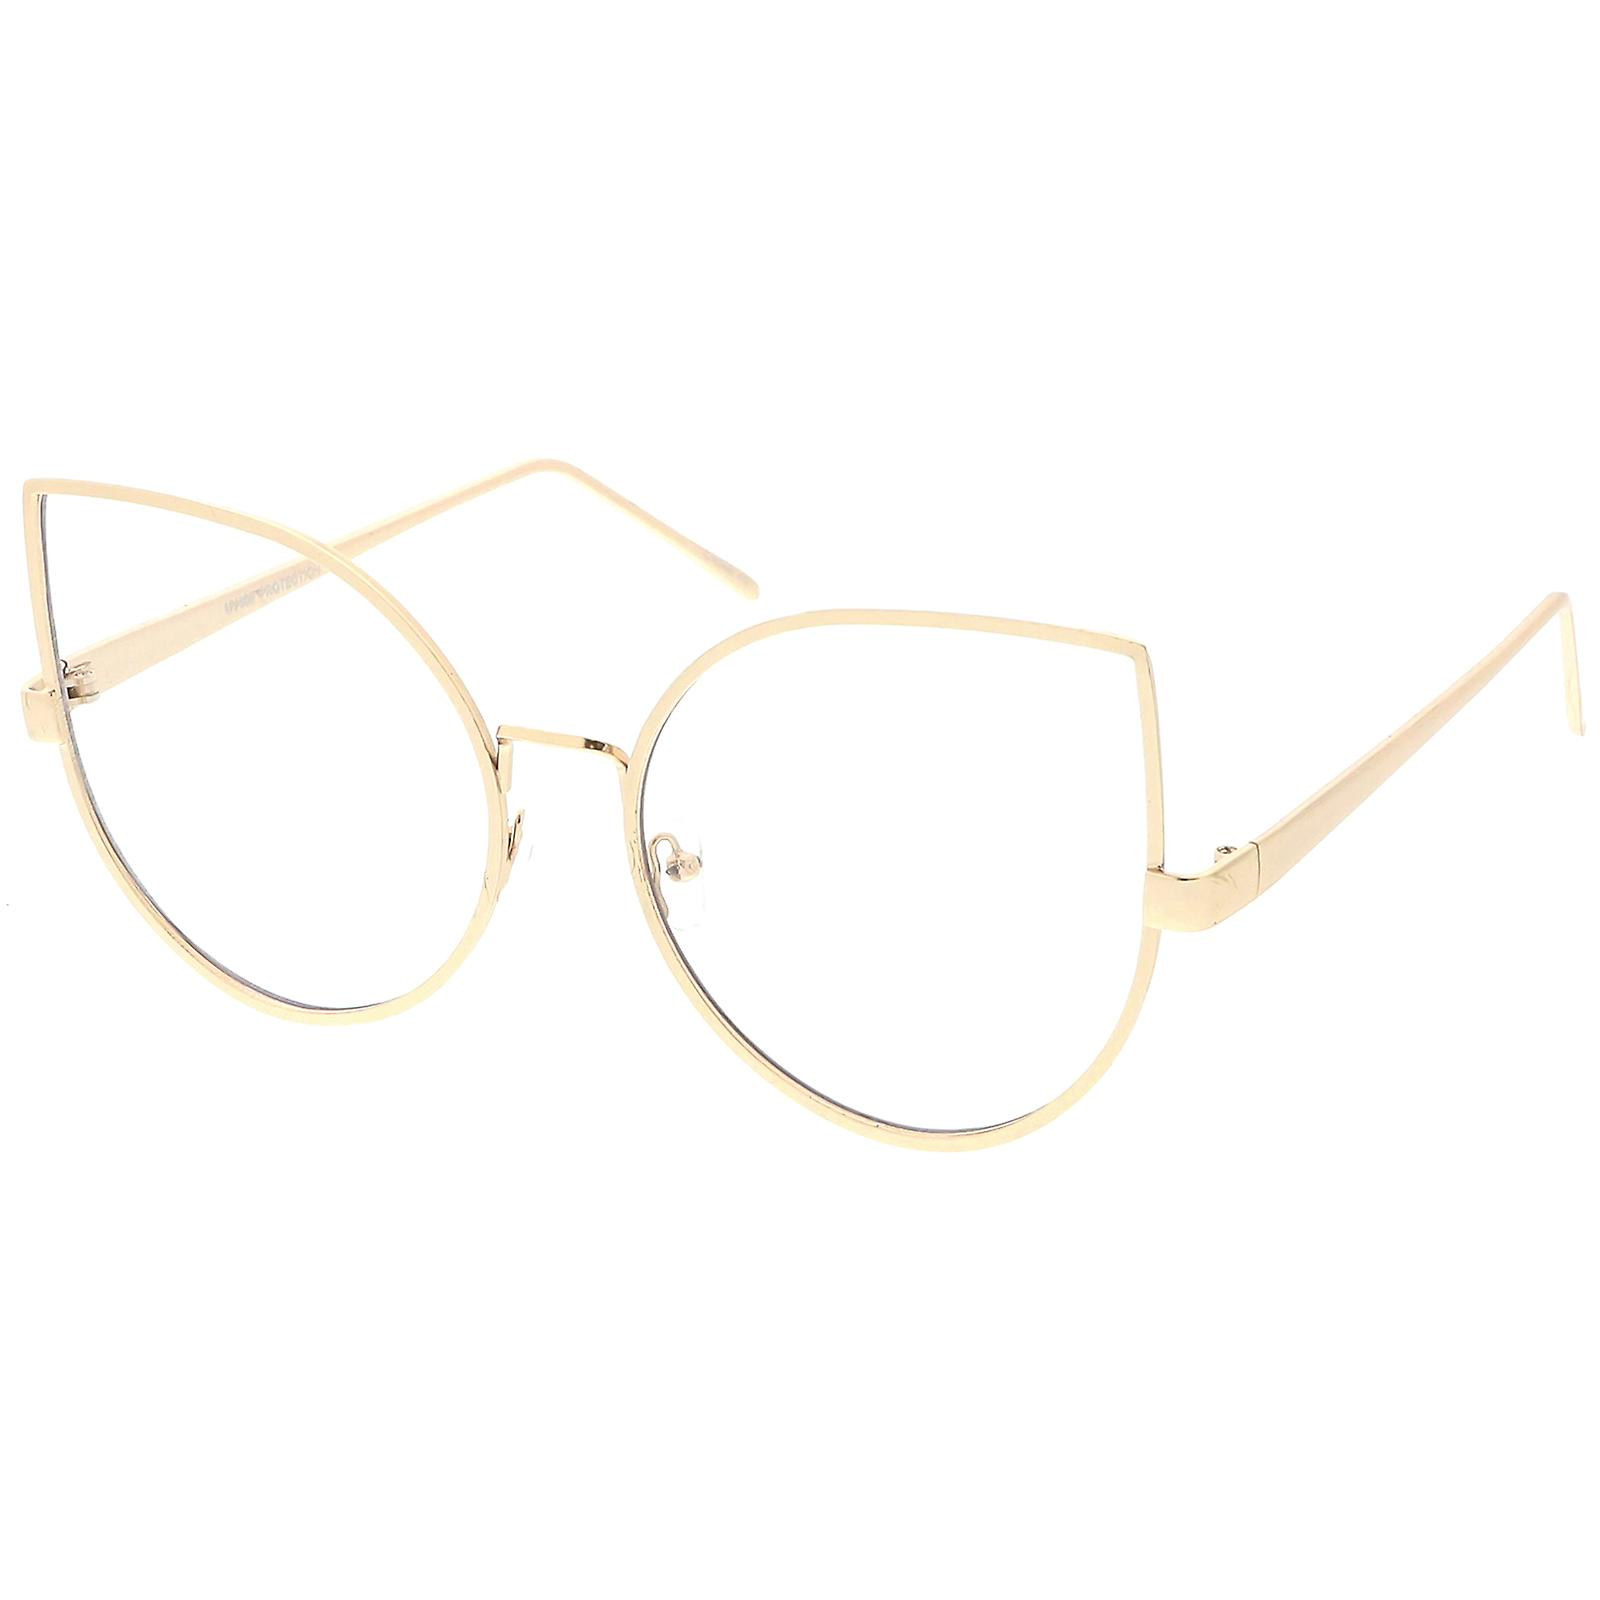 566920ddf57 Oversize Metal Cat Eye Glasses With Slim Arms Clear Round Flat Lens 62mm